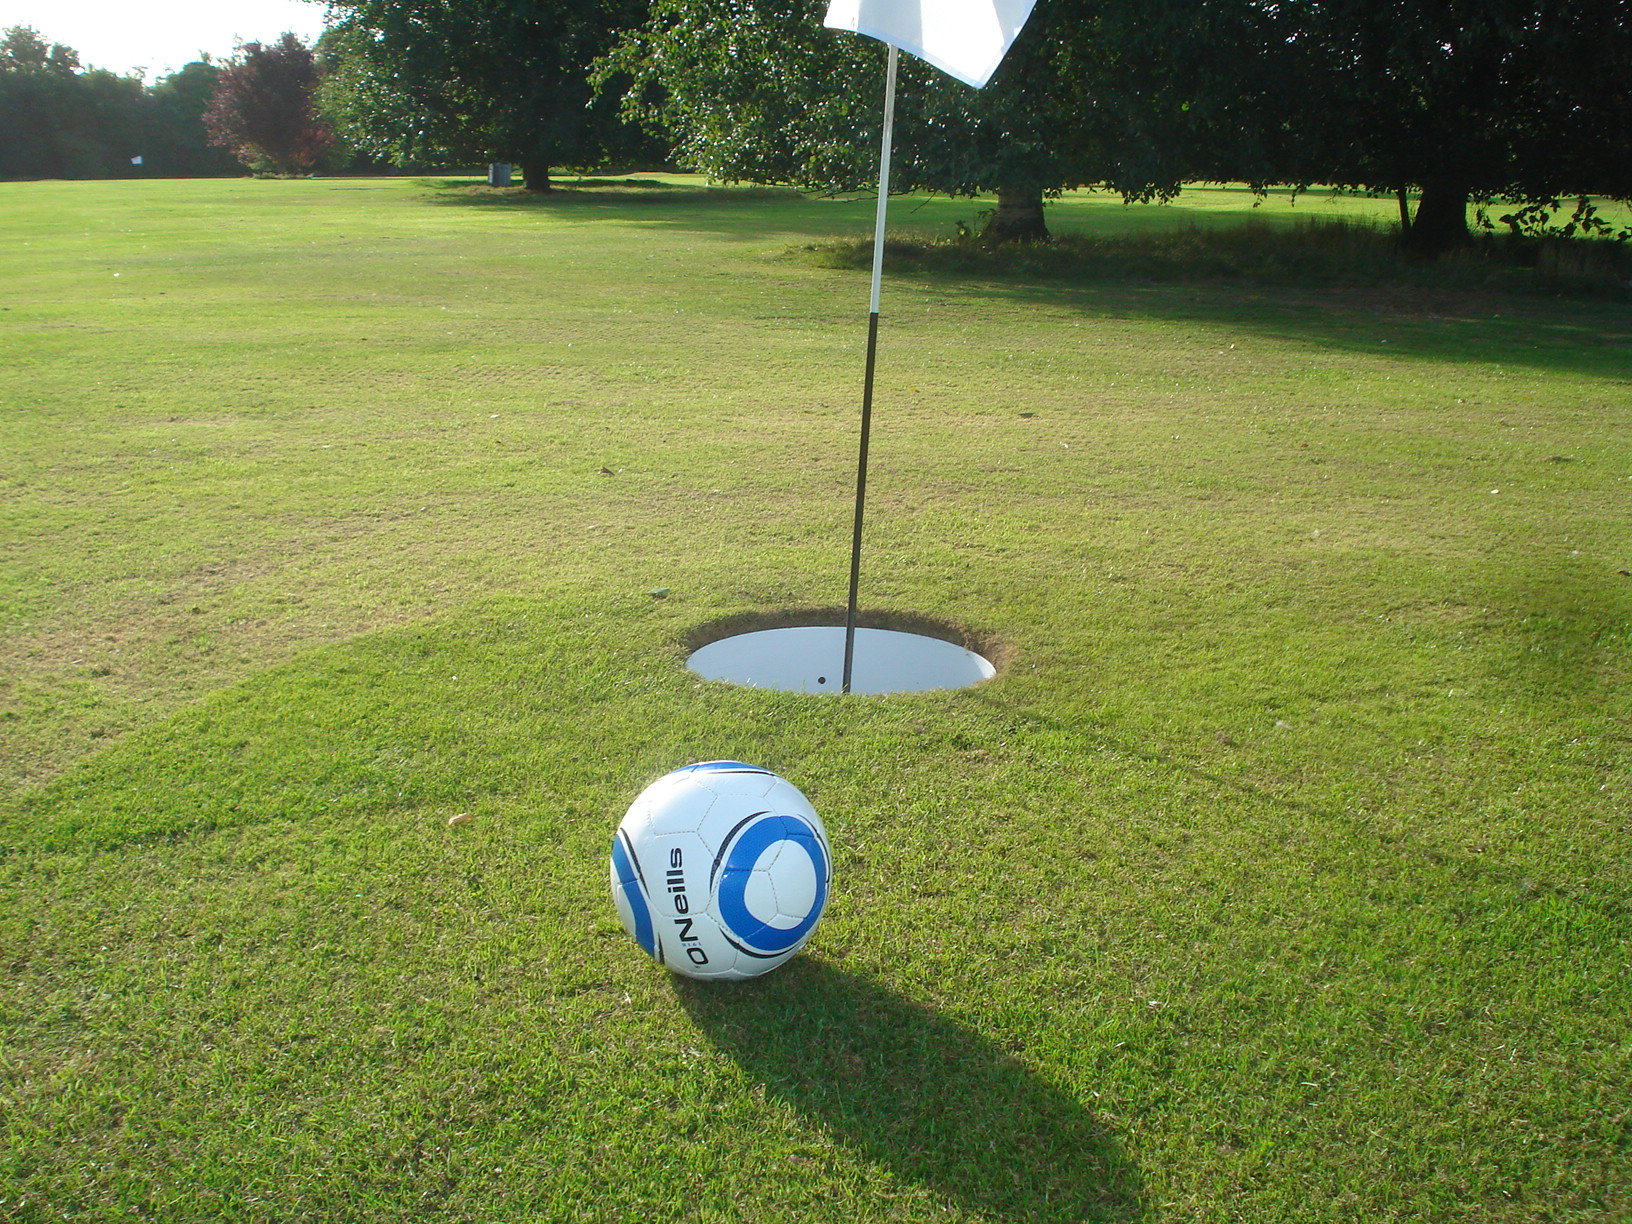 Rimini Footgolf